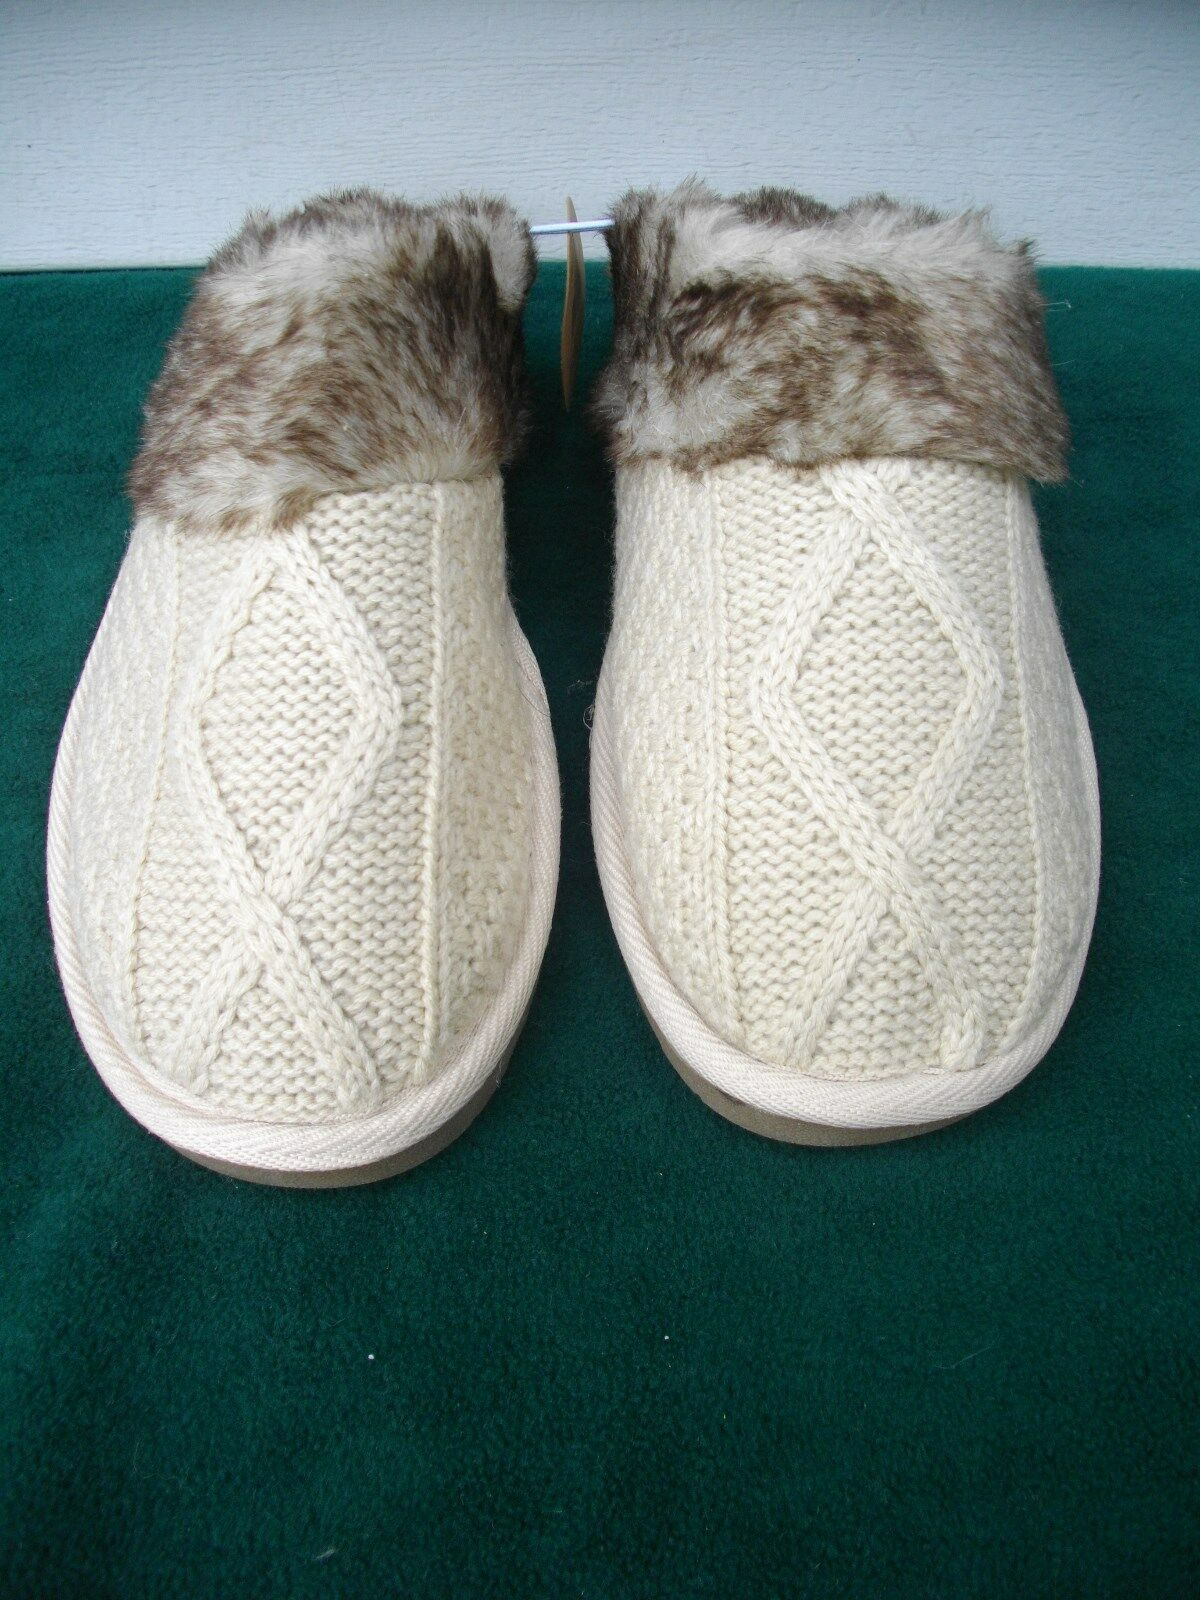 THE 5 & TWINE SLIP ON FLAT CLOG STYLE OPEN BACK FAUX FUR SLIPPERS WOMEN'S M